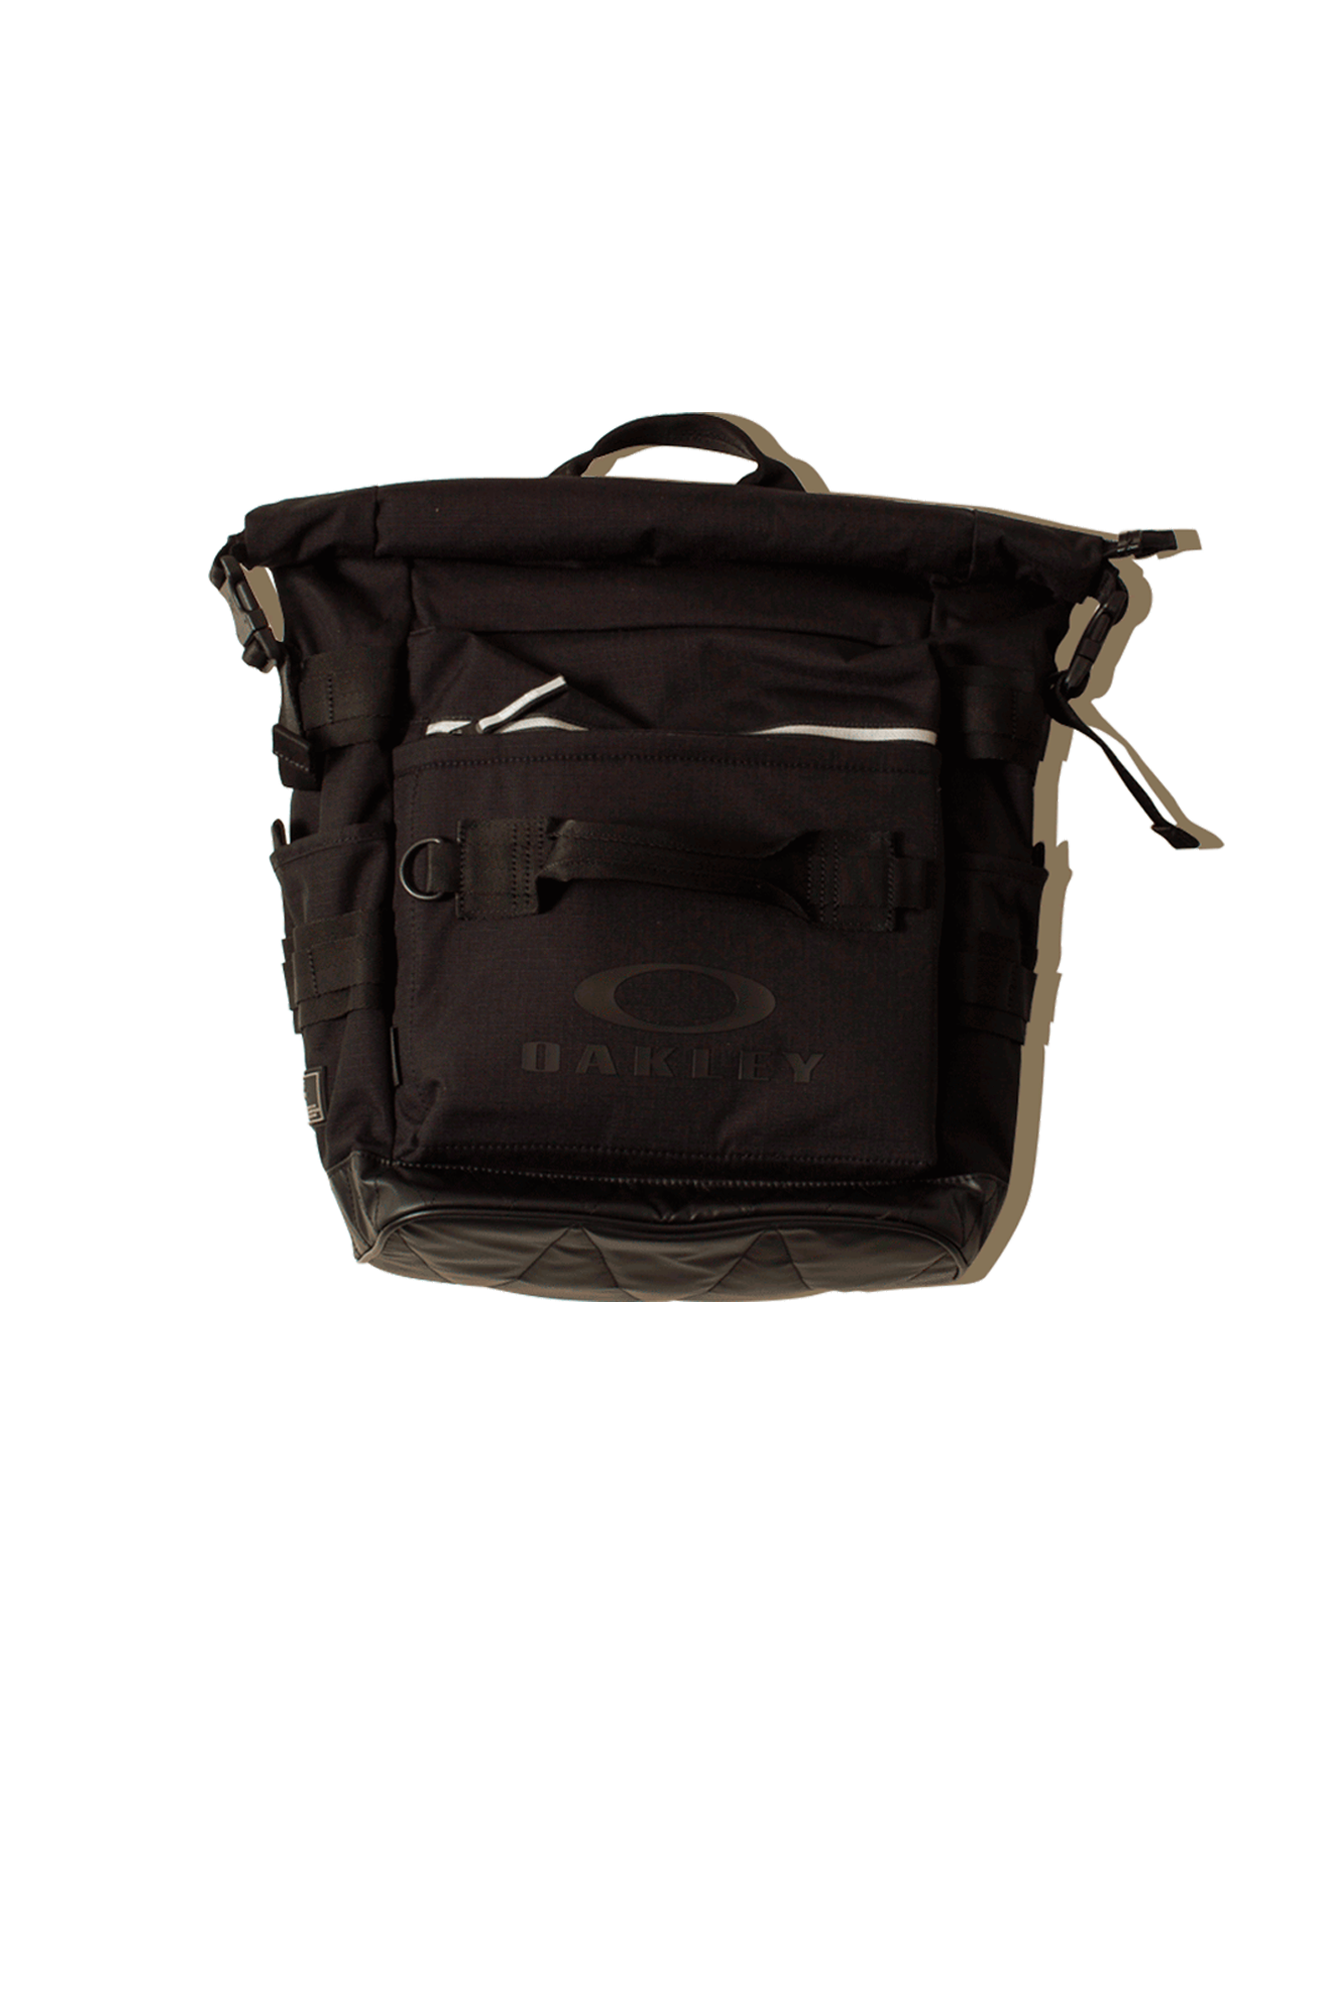 Utility Fotility Folded BackPack Black